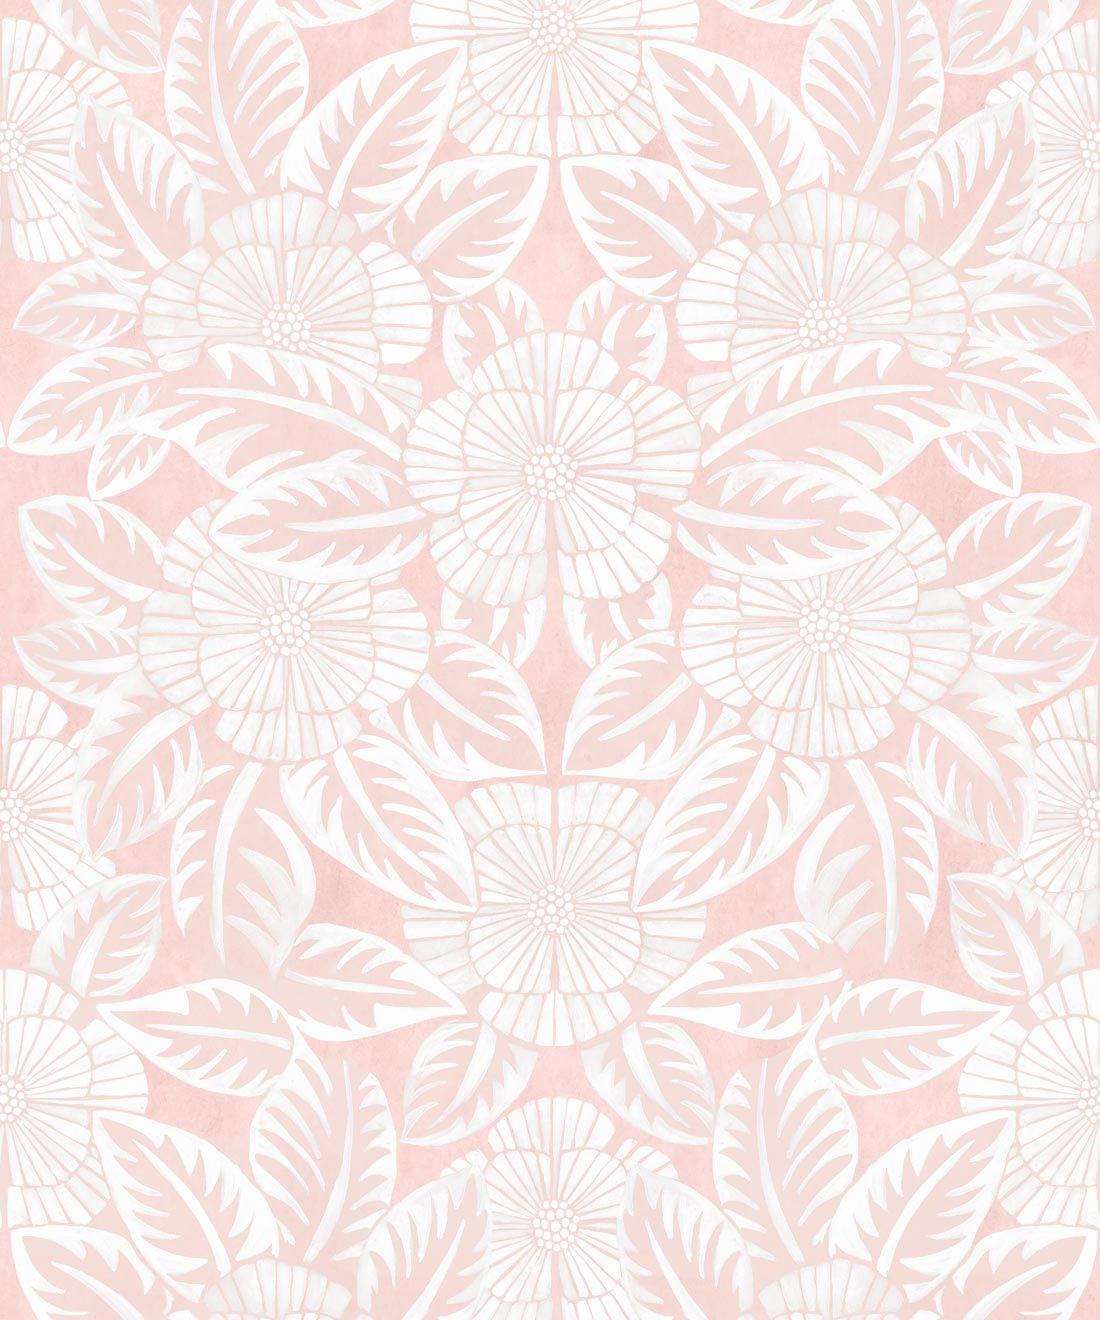 Calcutta Wallpaper • Flower and Leaf Motif Design • Ethnic Wallpaper • Pink Wallpaper • Swatch